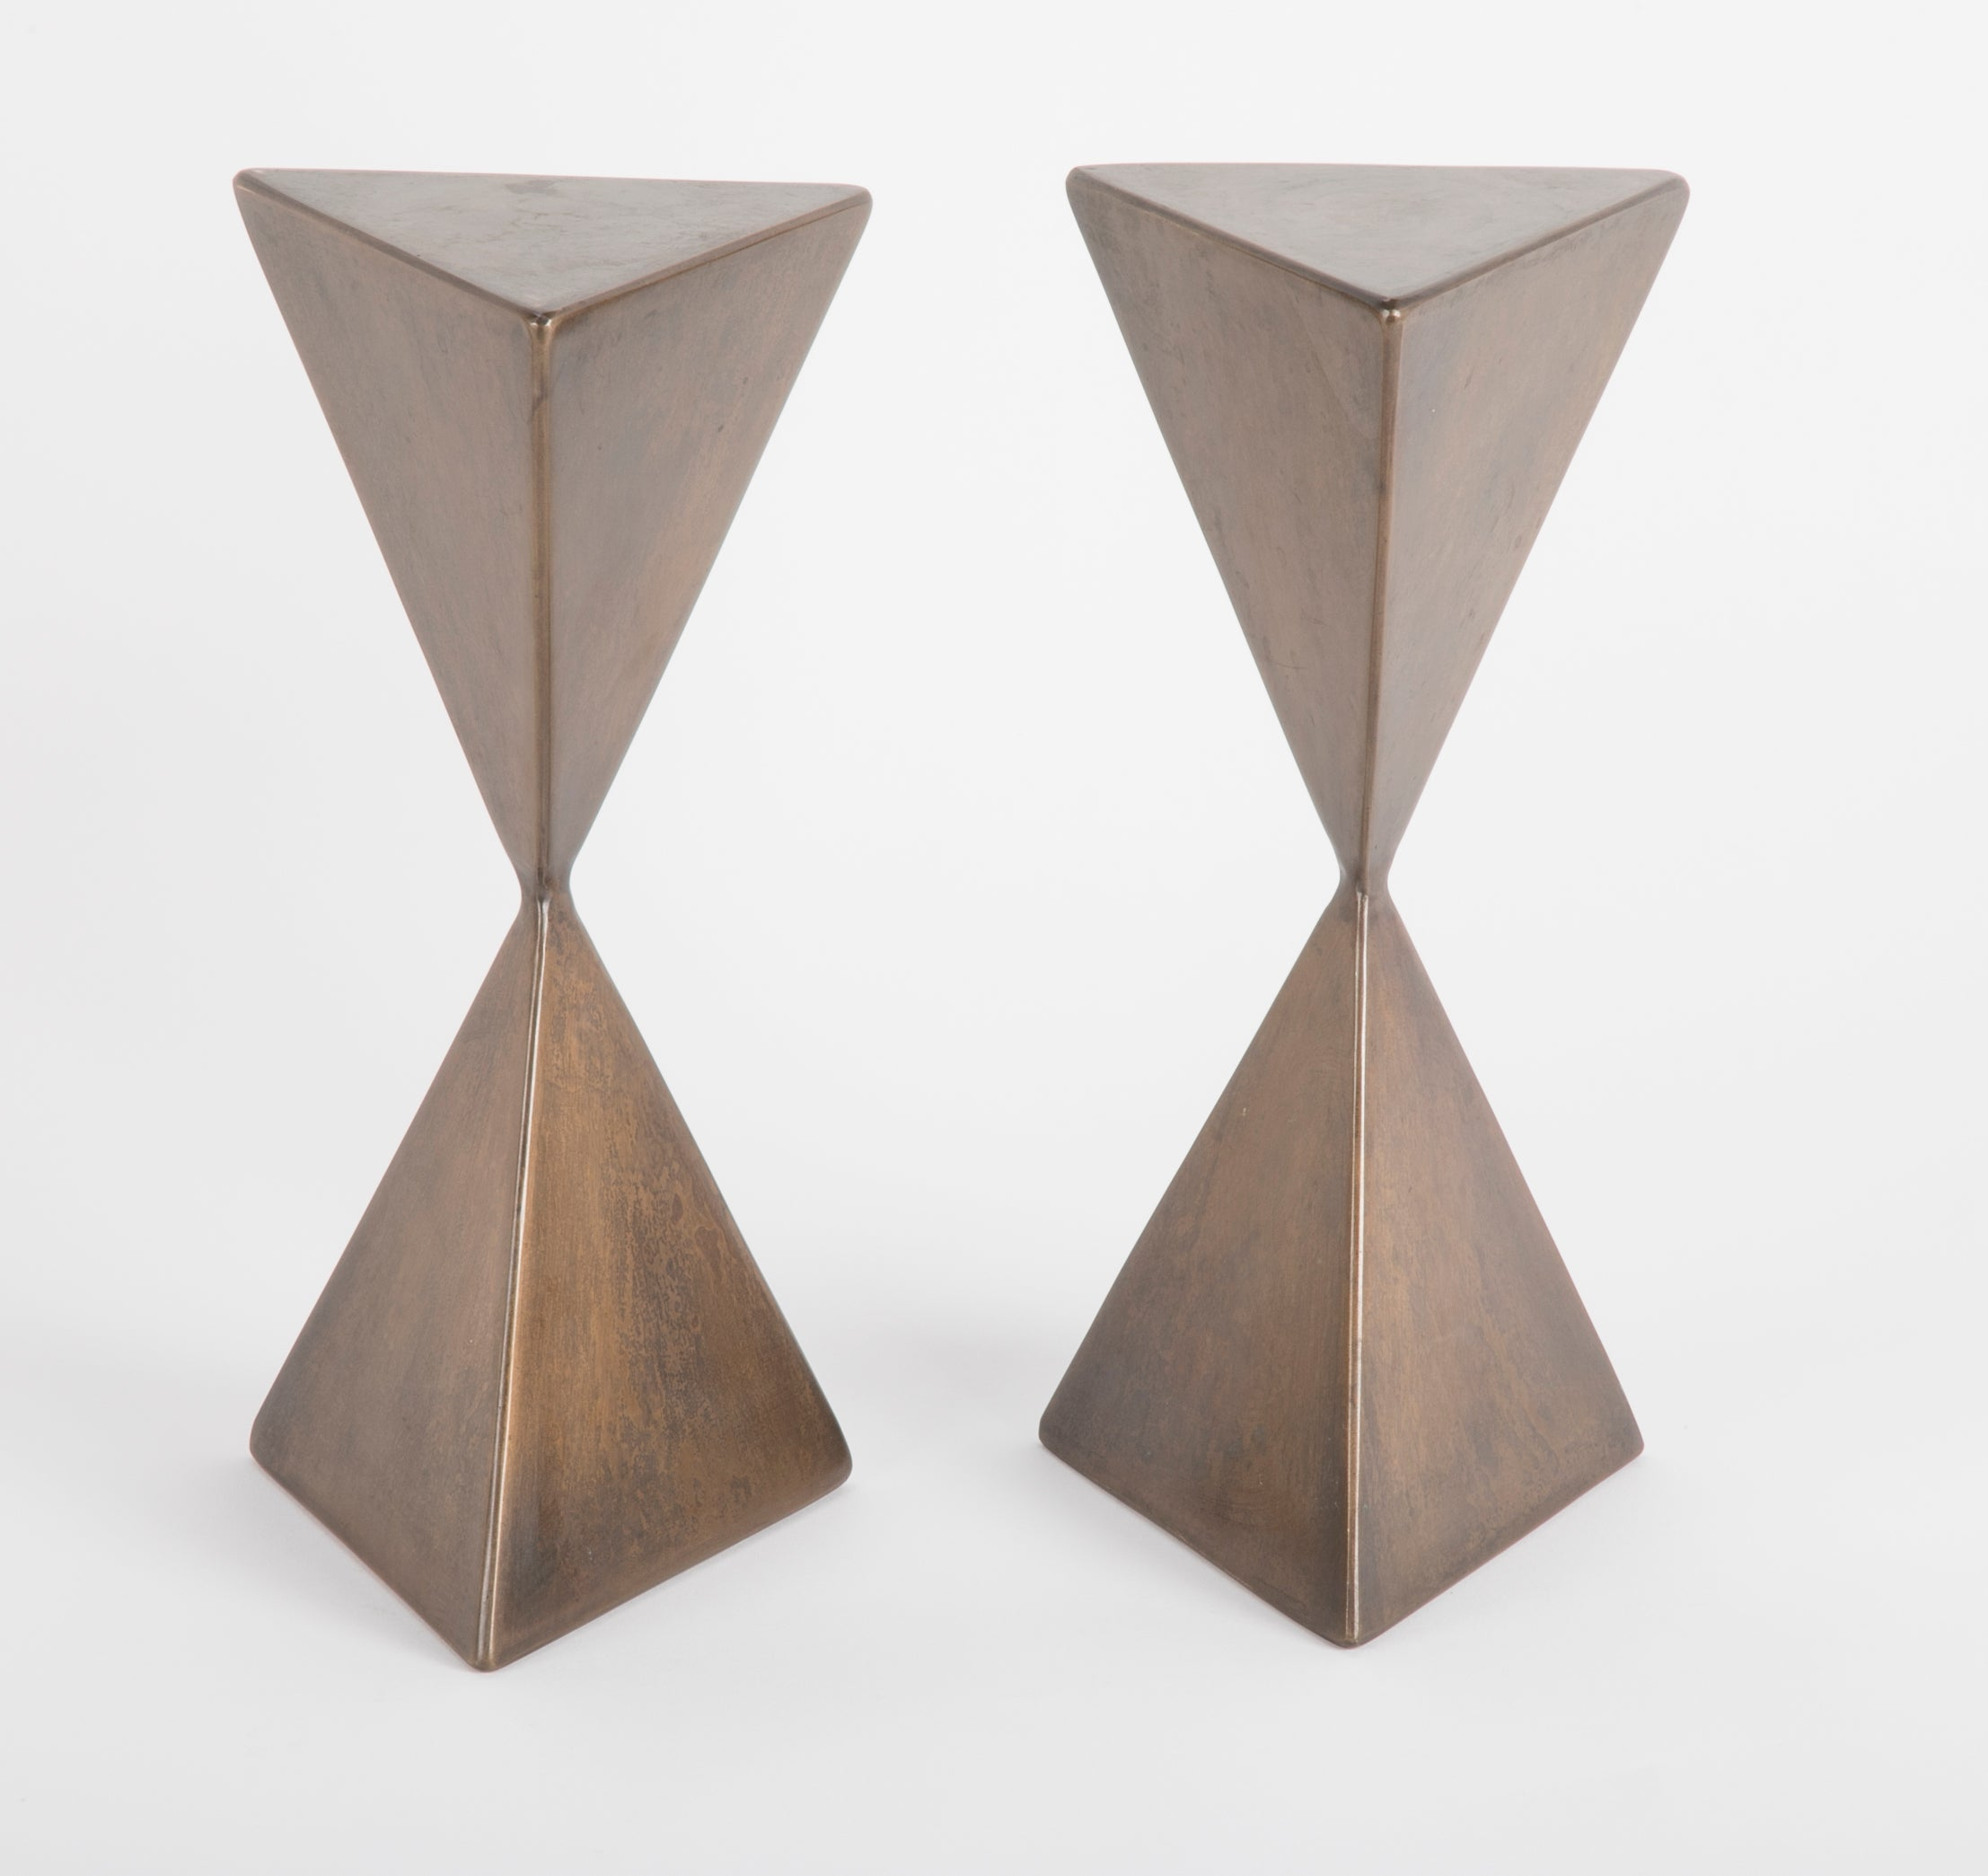 Bronze Totems or Sculptures by Rod Kagan